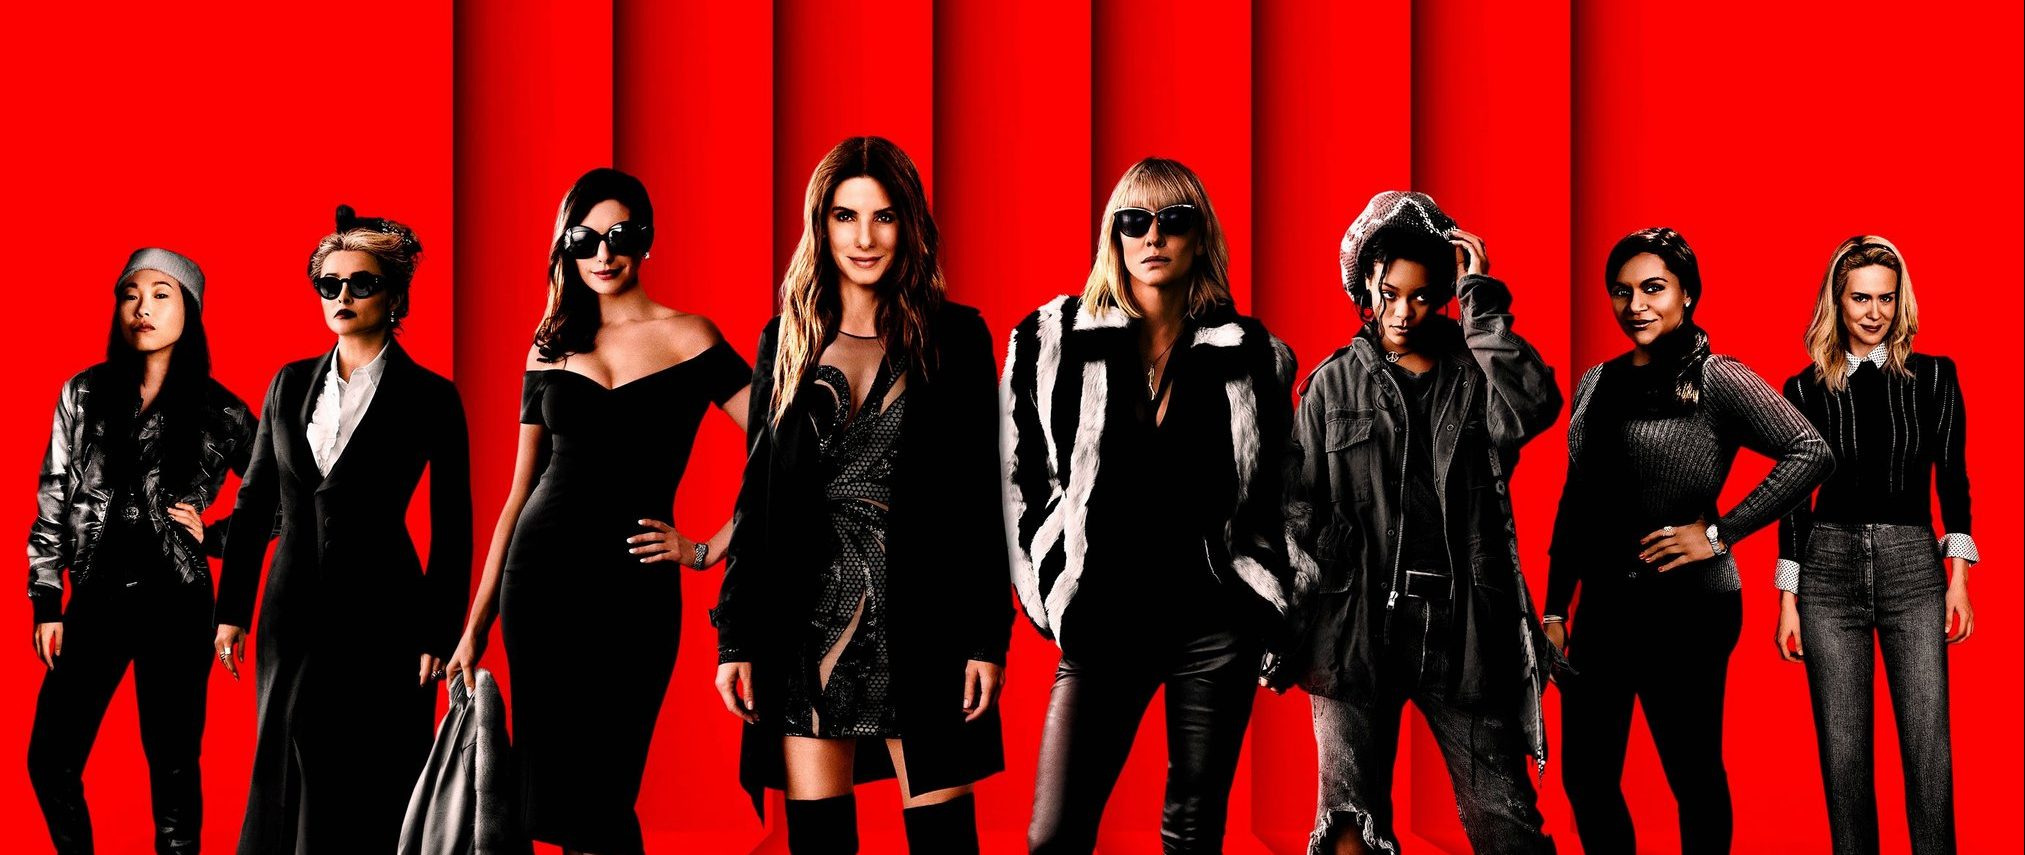 News on Ocean's 8 Premiere + Manifesto in Belgium